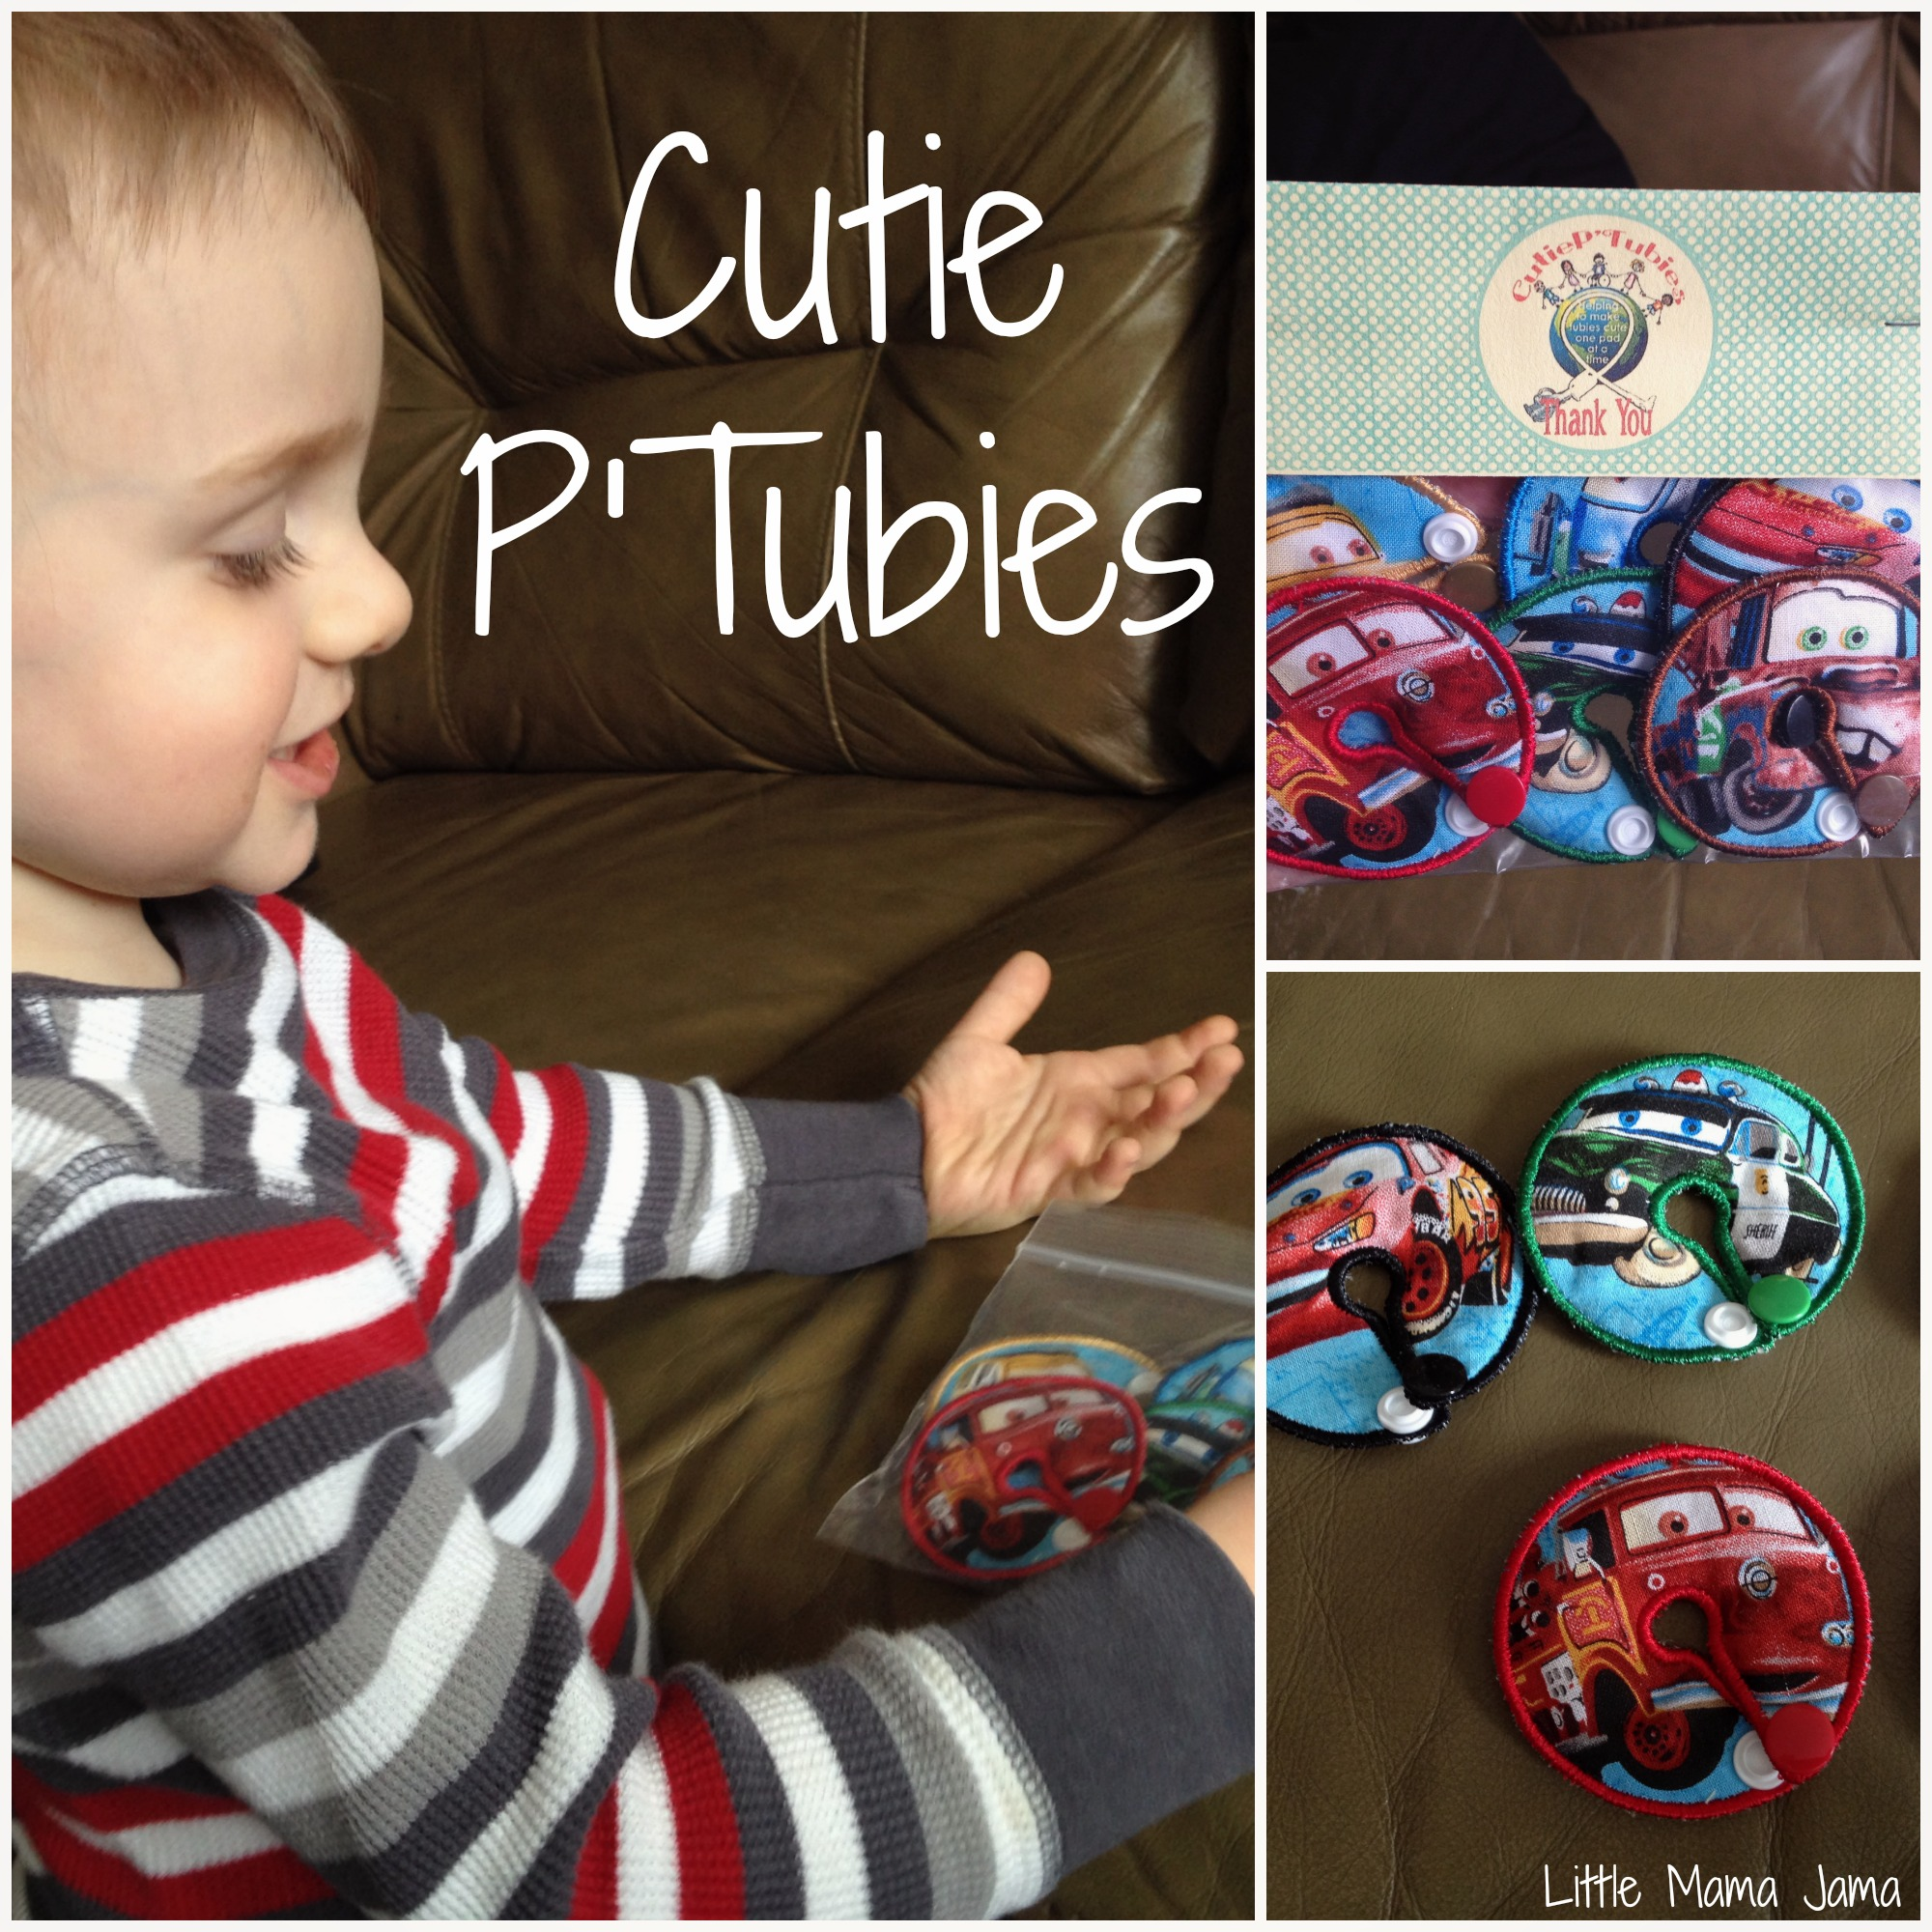 Cutie P'Tubies Review & FLASH Giveaway: Making tubies cute one pad at a time!